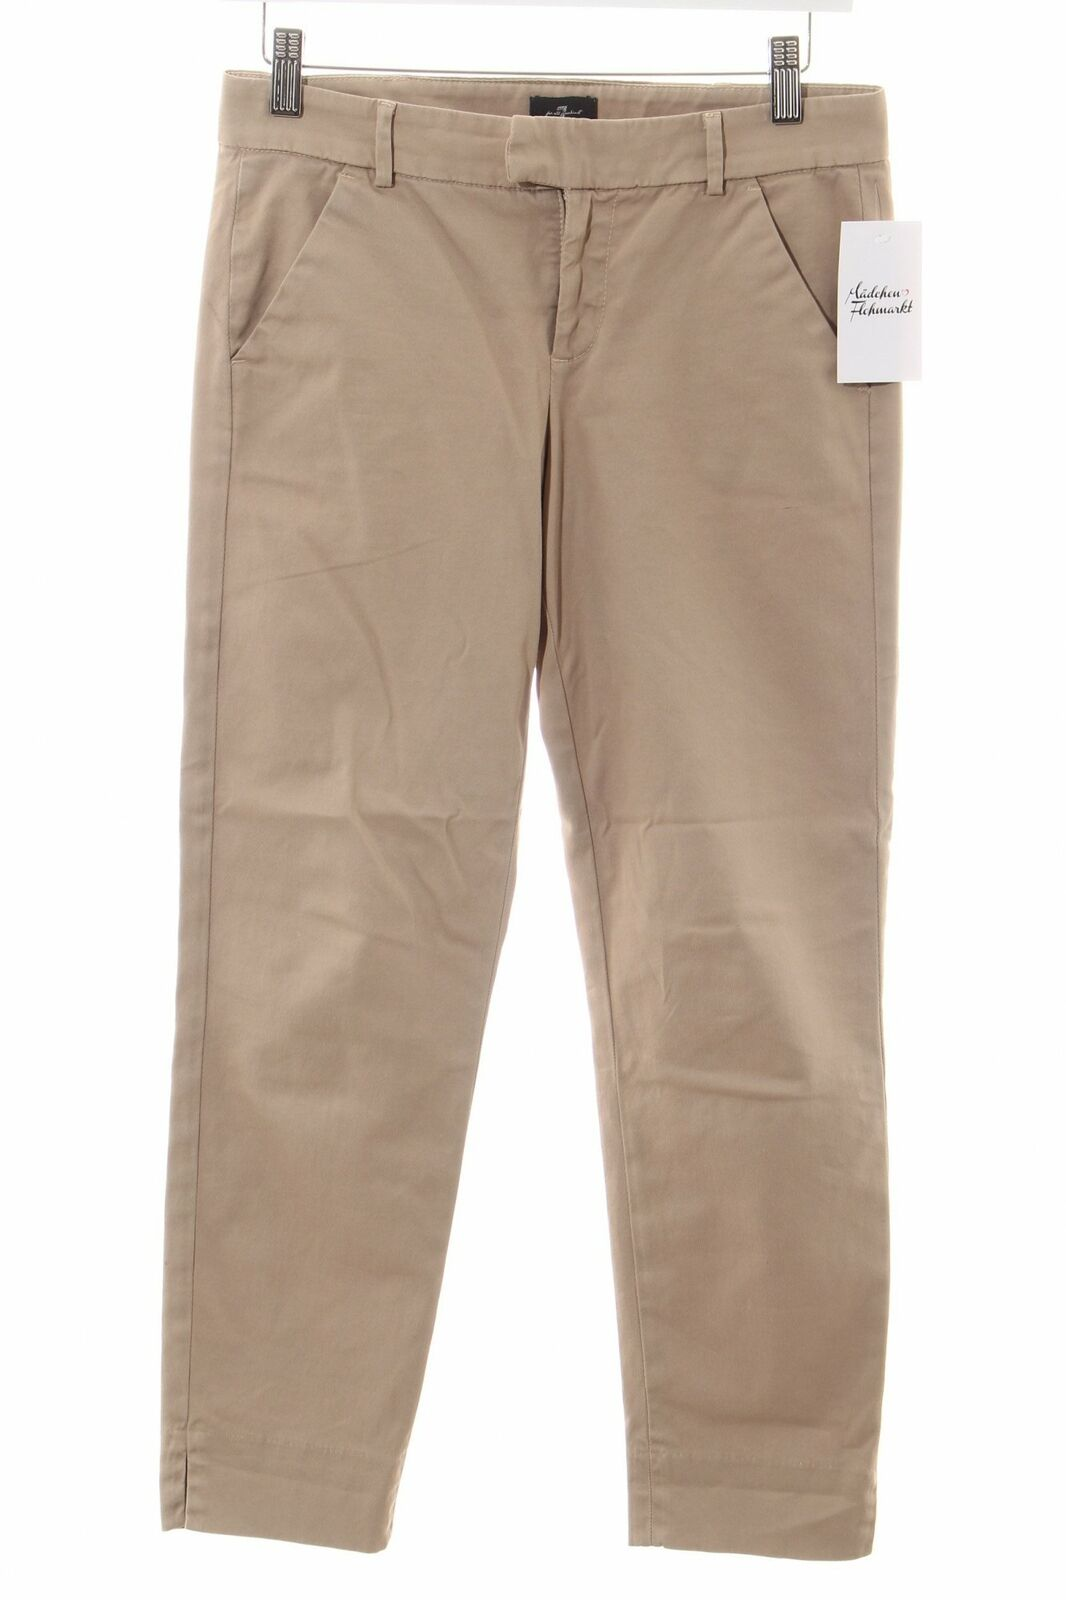 7 for all mankind 7 8 - pantaloni beige casual-look casual-look casual-look da donna tg. de 30 TROUSERS 42ffd4